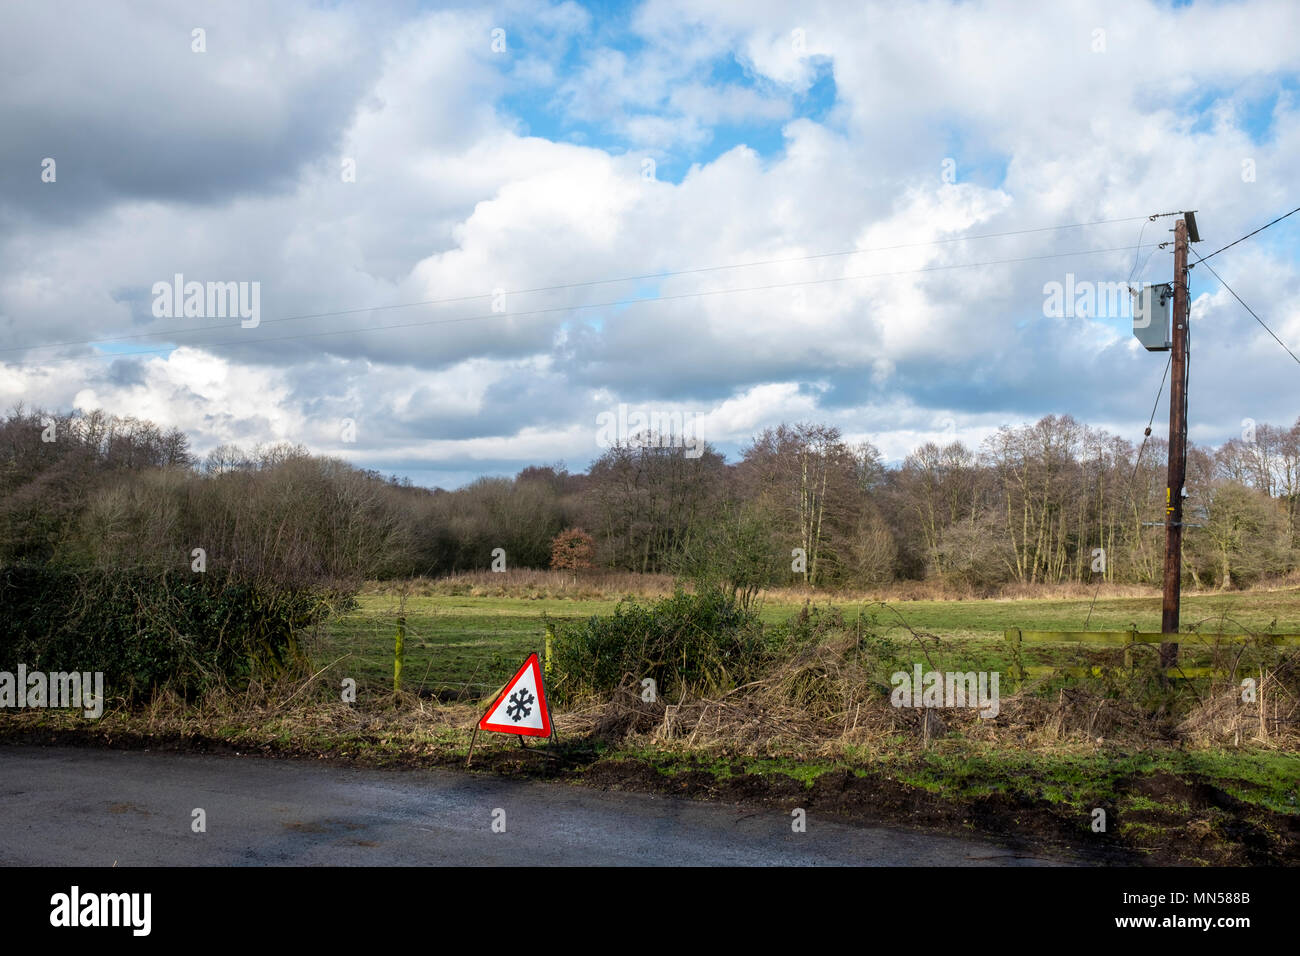 Ice on road warning sign in rural Cheshire UK - Stock Image